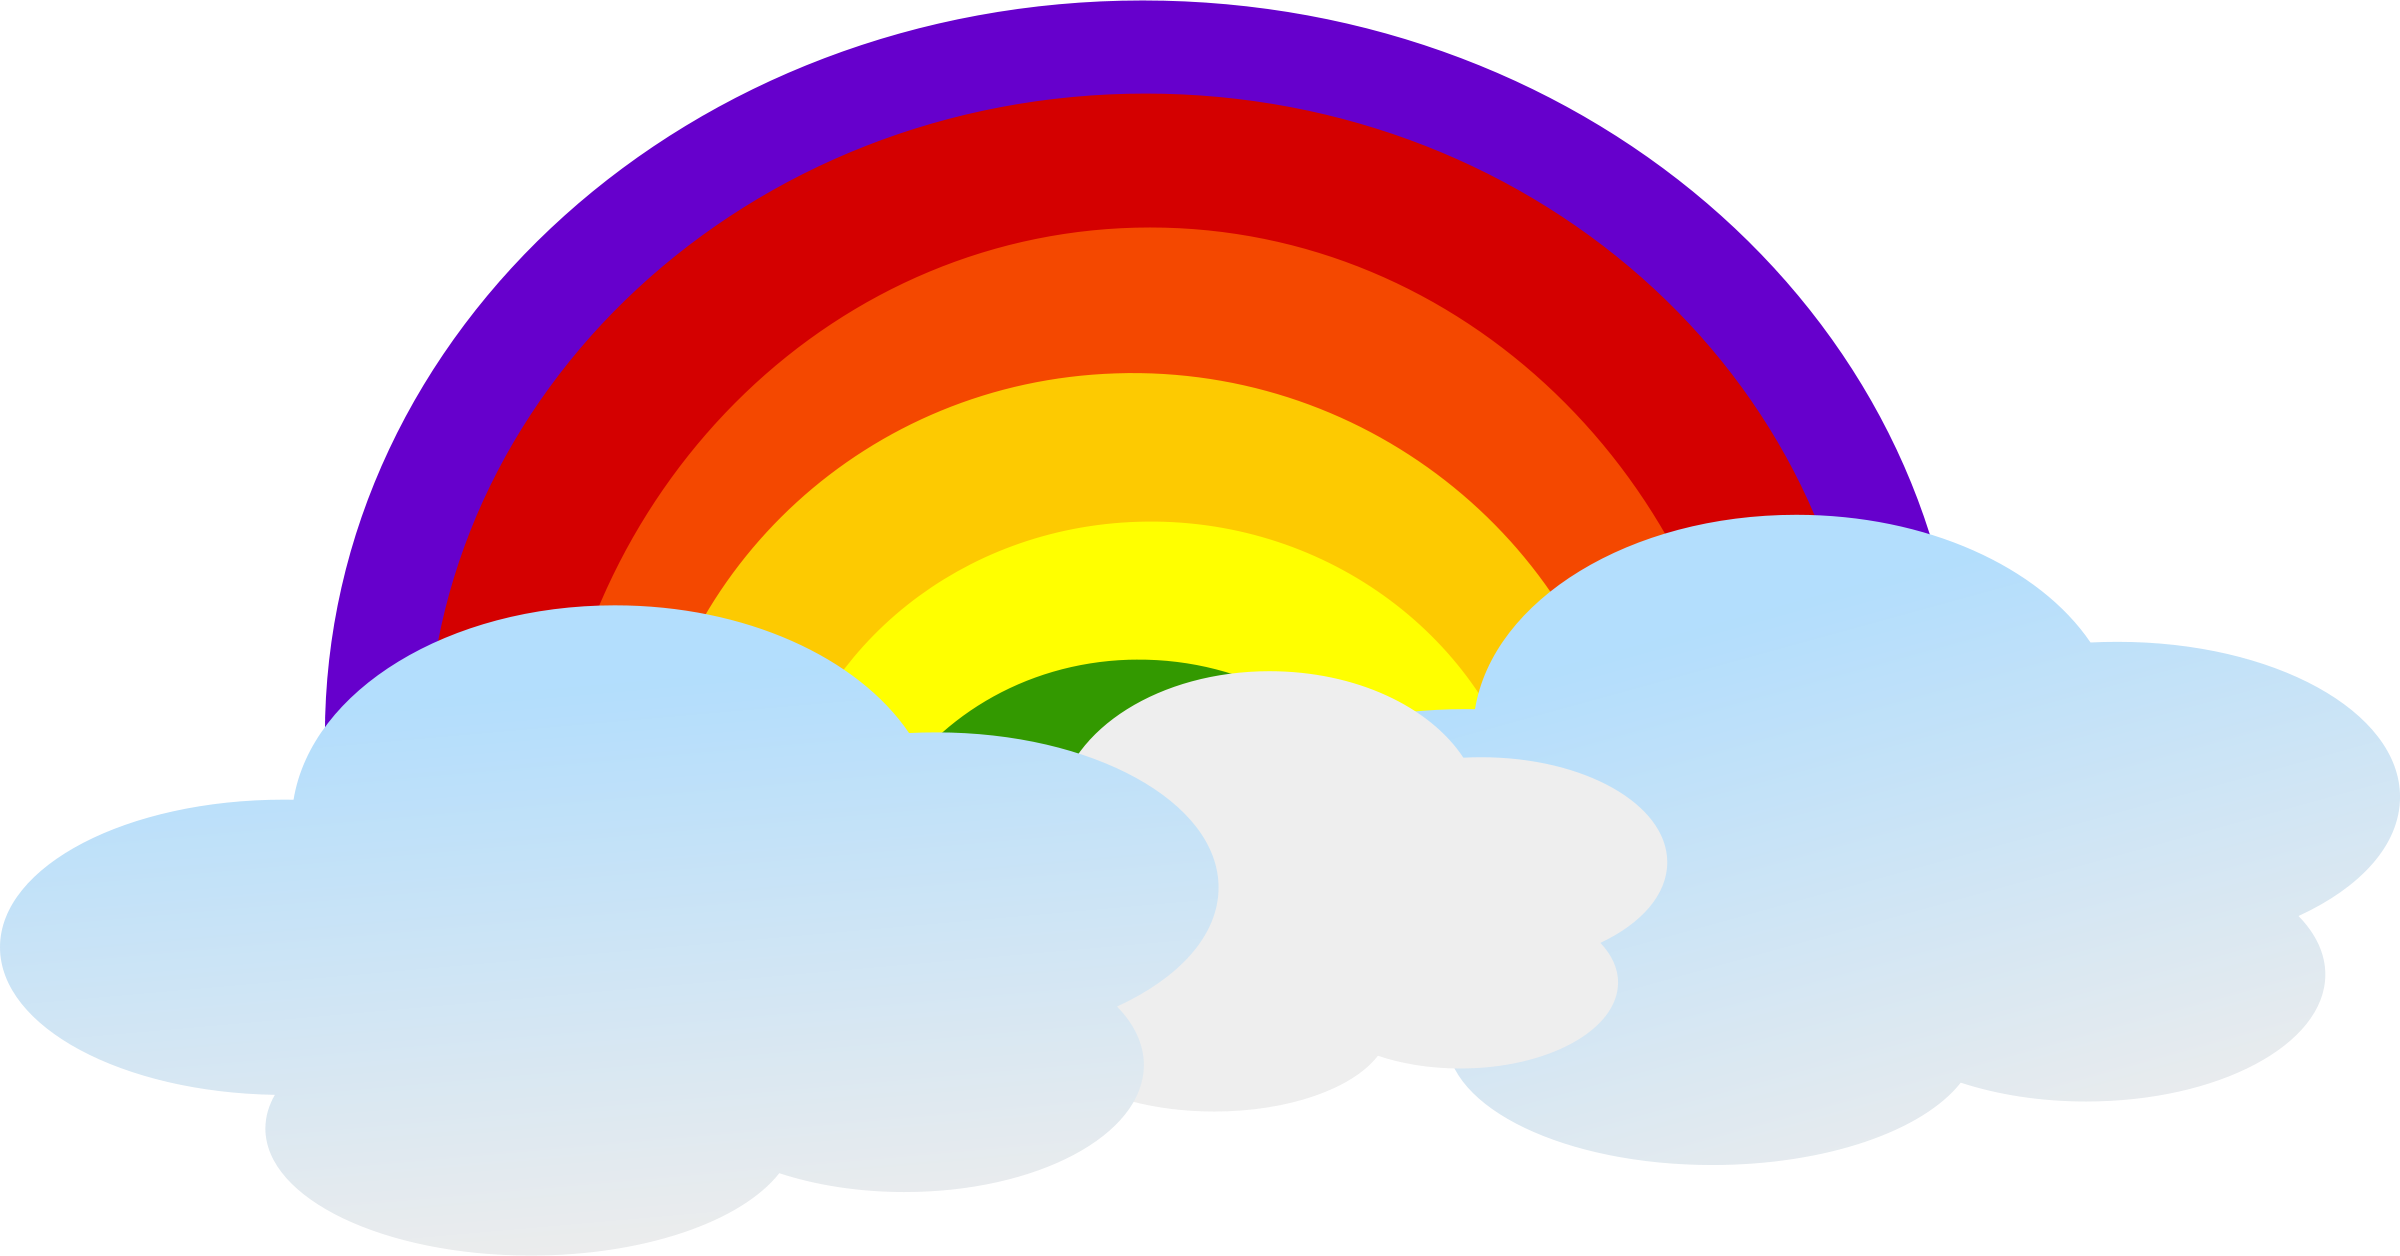 Rainbow and sun clipart background